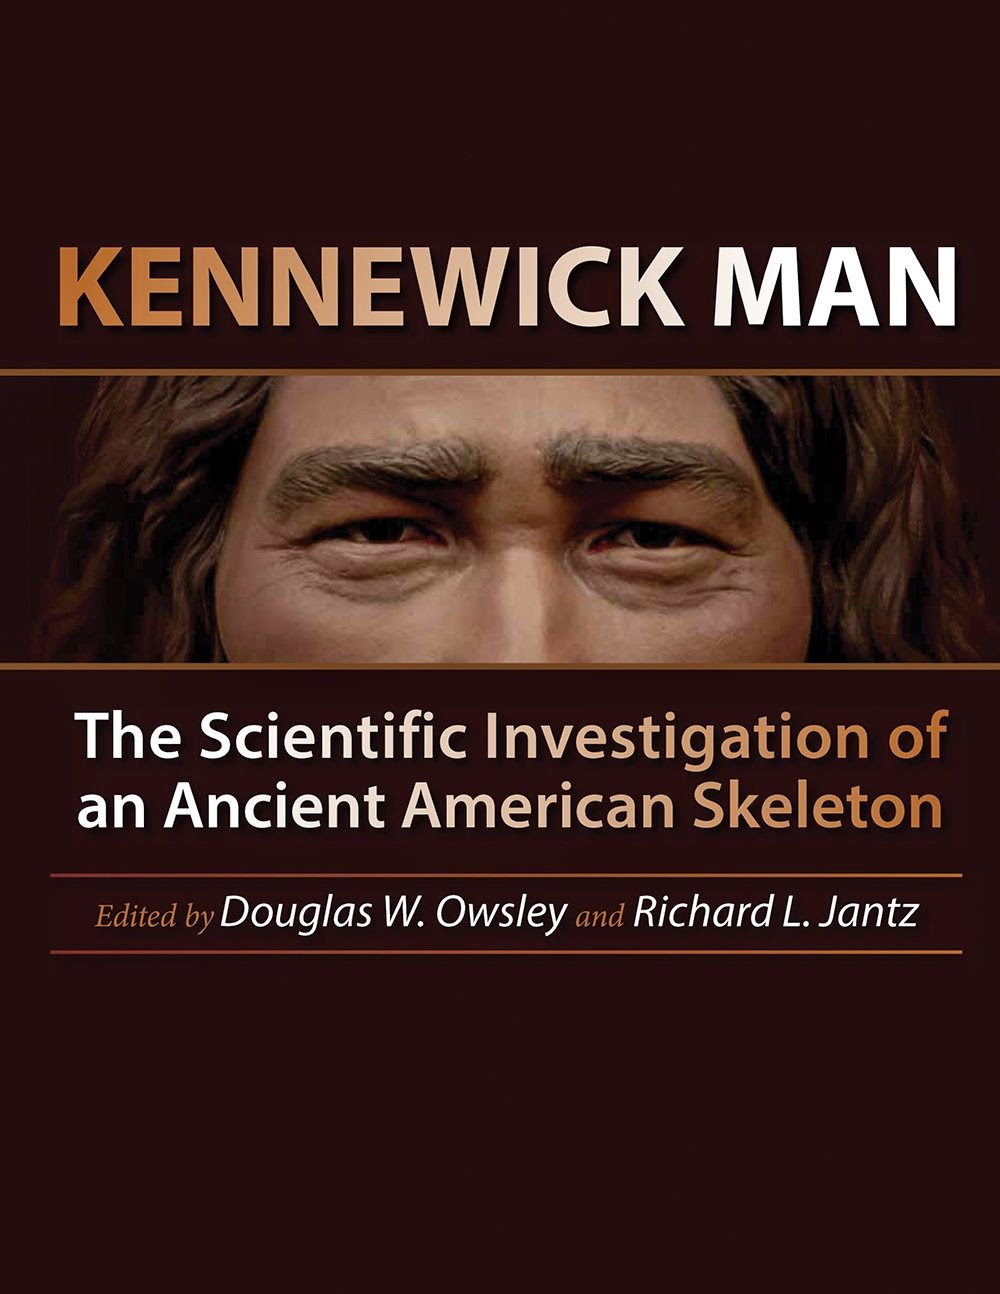 kennewick man archeology argument The kennewick man and kennewick man will remain at this argument the skeletal remains have yet important to modern time's archeology even if human.